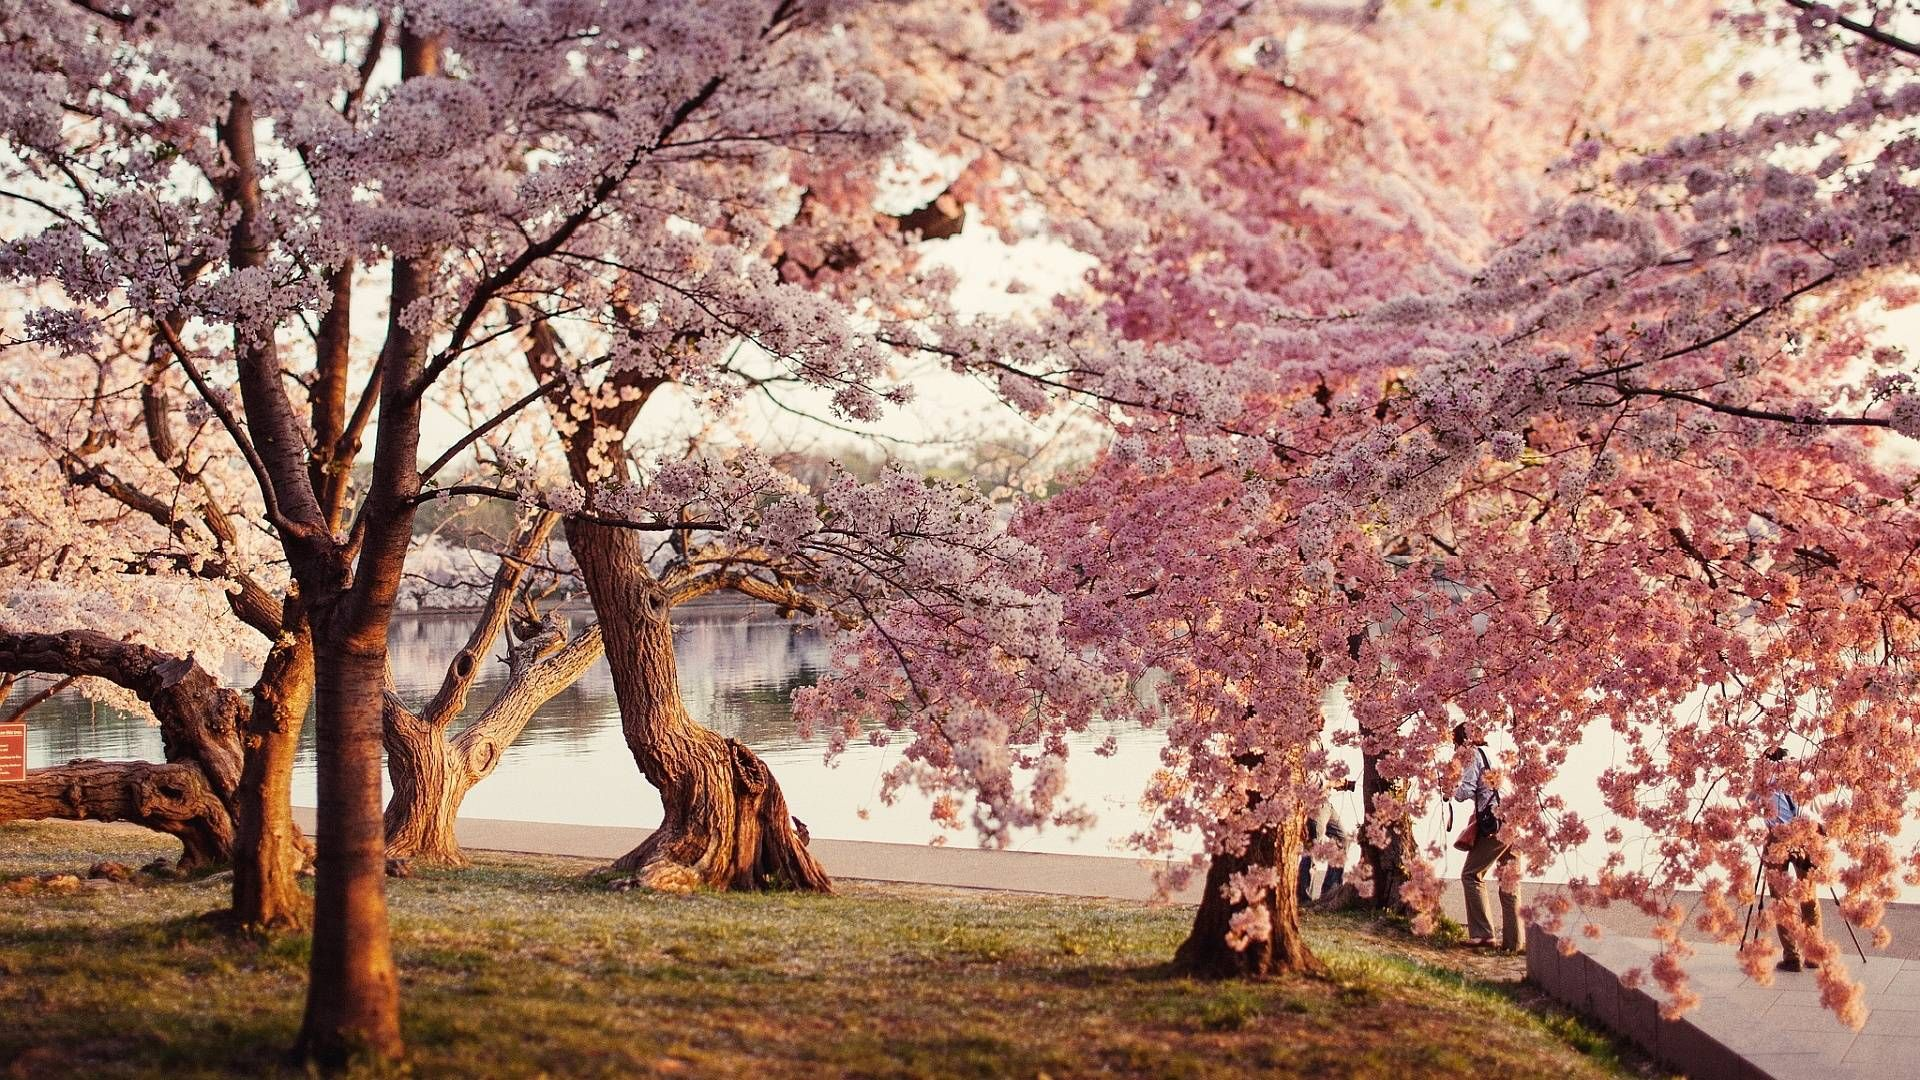 Cherry Blossom Desktop Wallpapers Wallpaper Cave Cherry Blossom Wallpaper Amazing Nature Photos Nature Photography